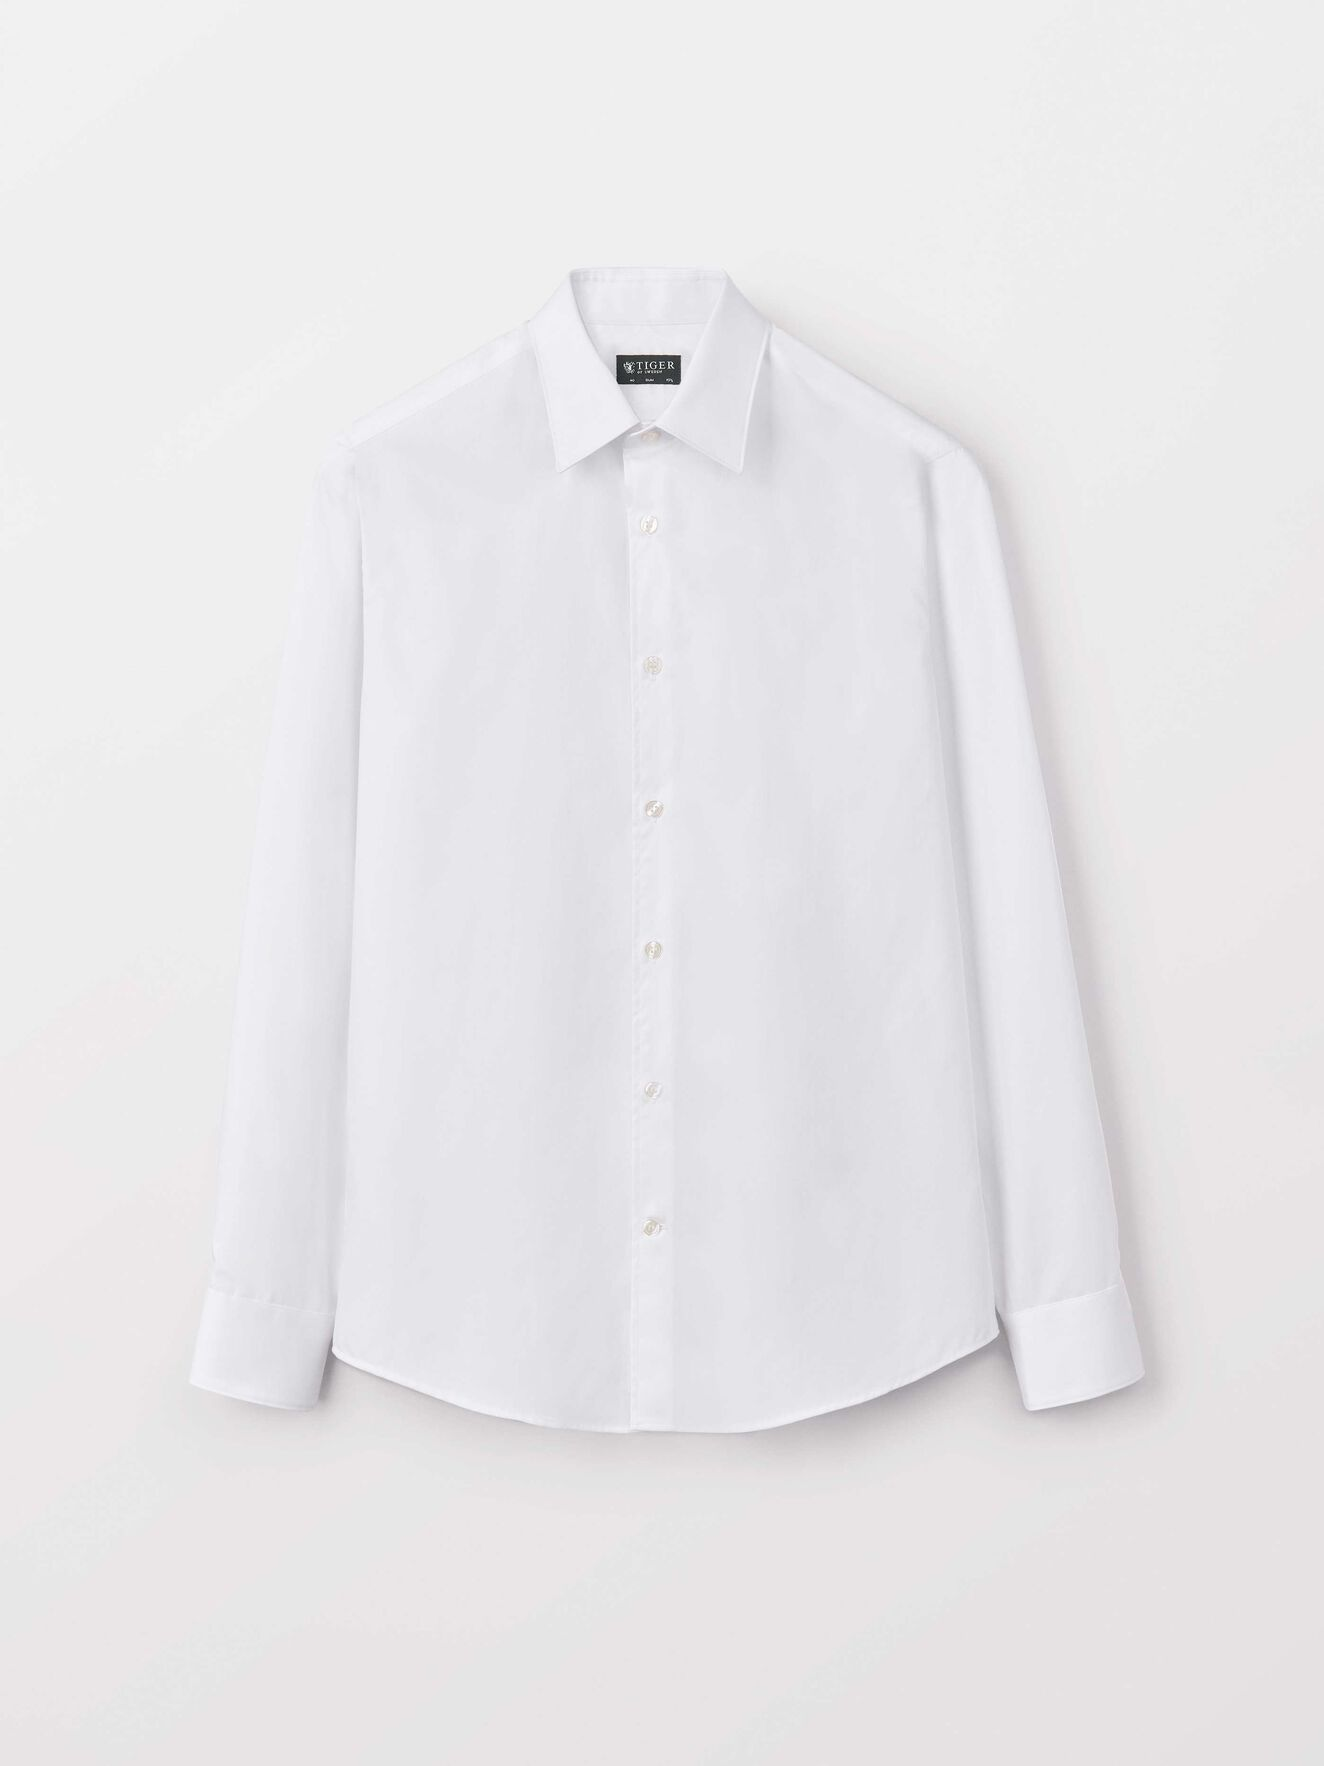 c8c80a5f462 ... Farrell Shirt in Pure white from Tiger of Sweden ...